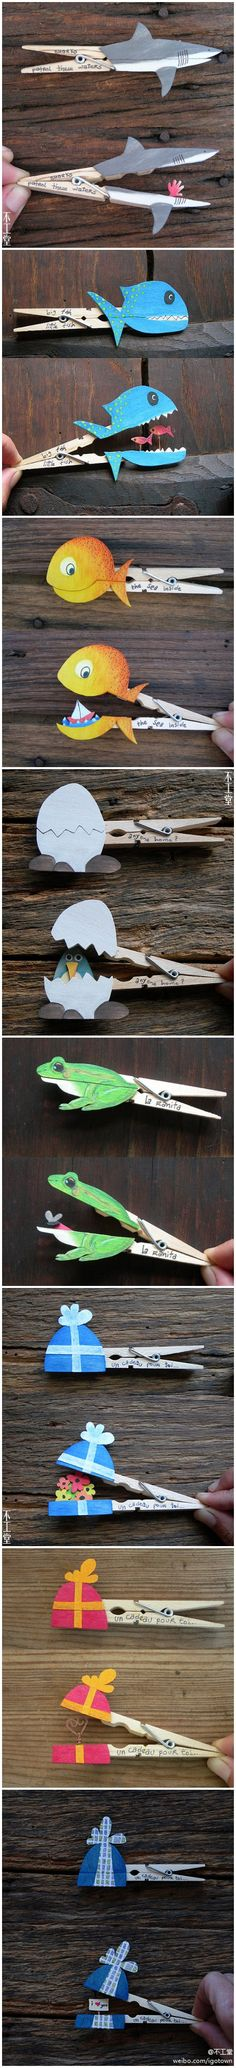 Pictue inspiration for cute and interesting clothespin critters.  Could be fun to play around with. No tutorial and the page is in French.